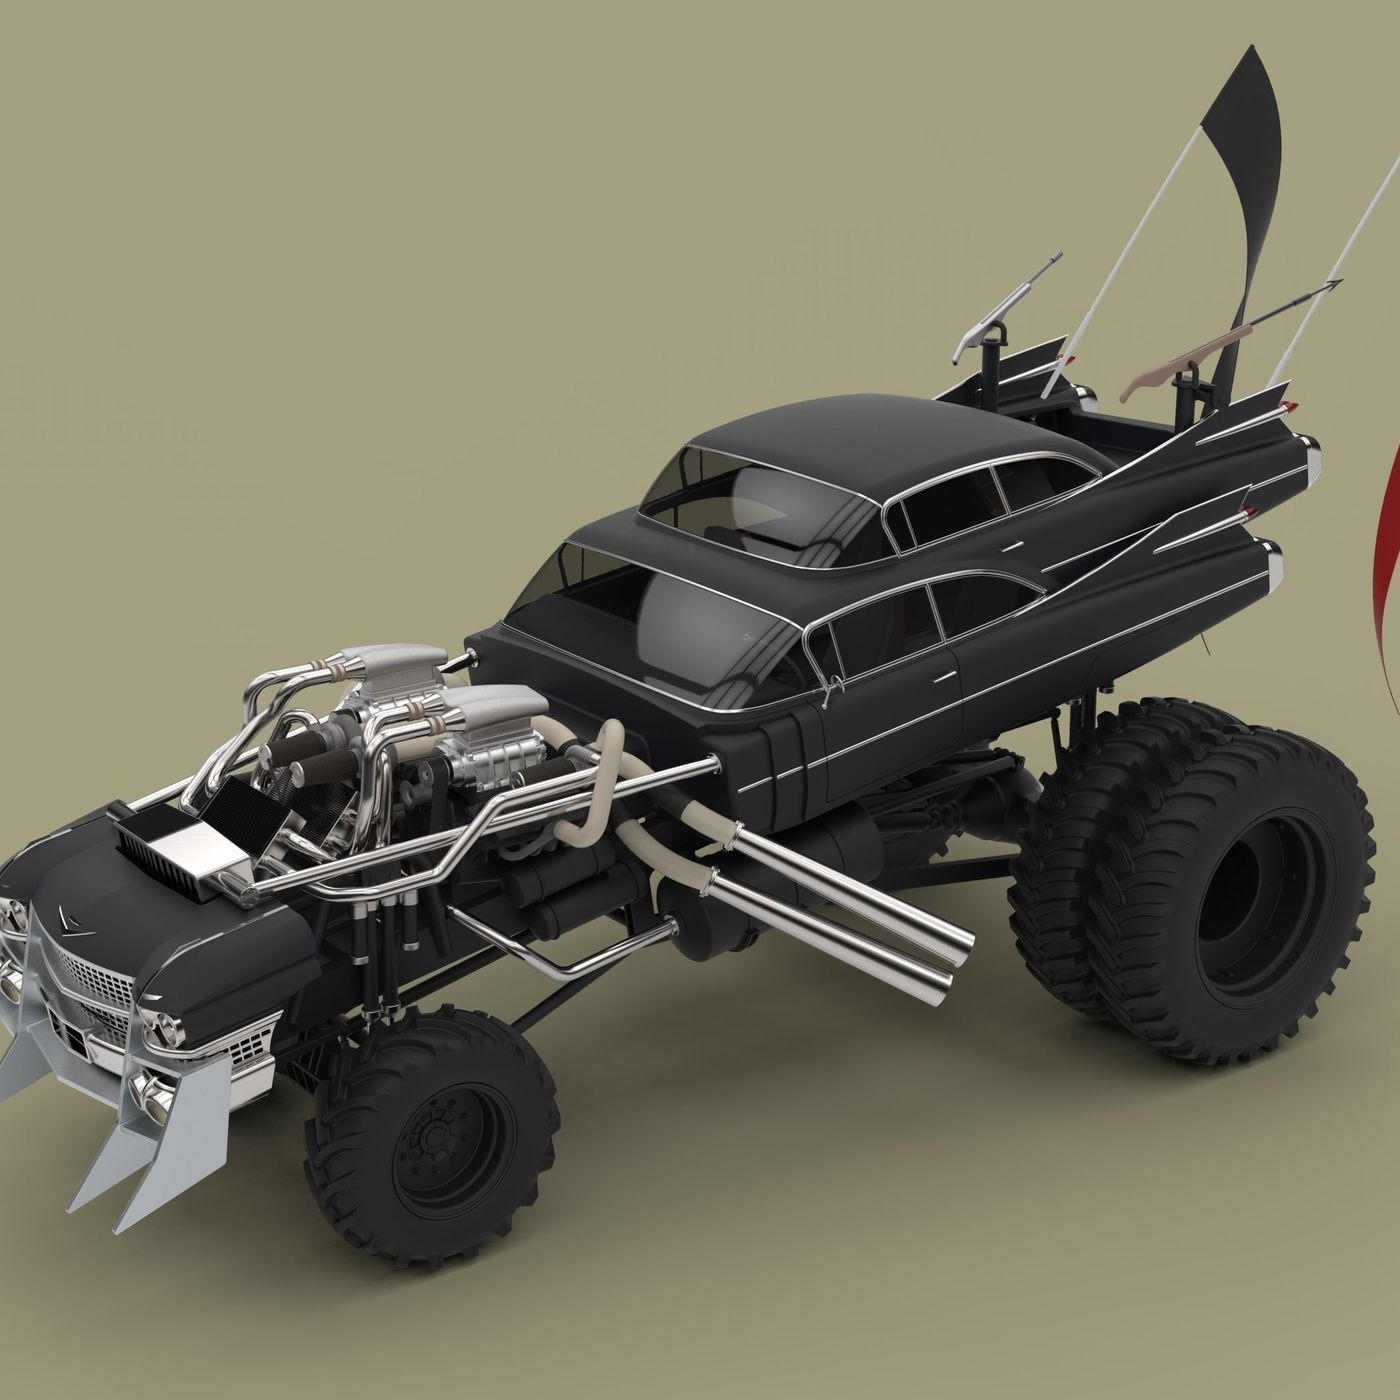 Gigahorse from Mad Max Fury road